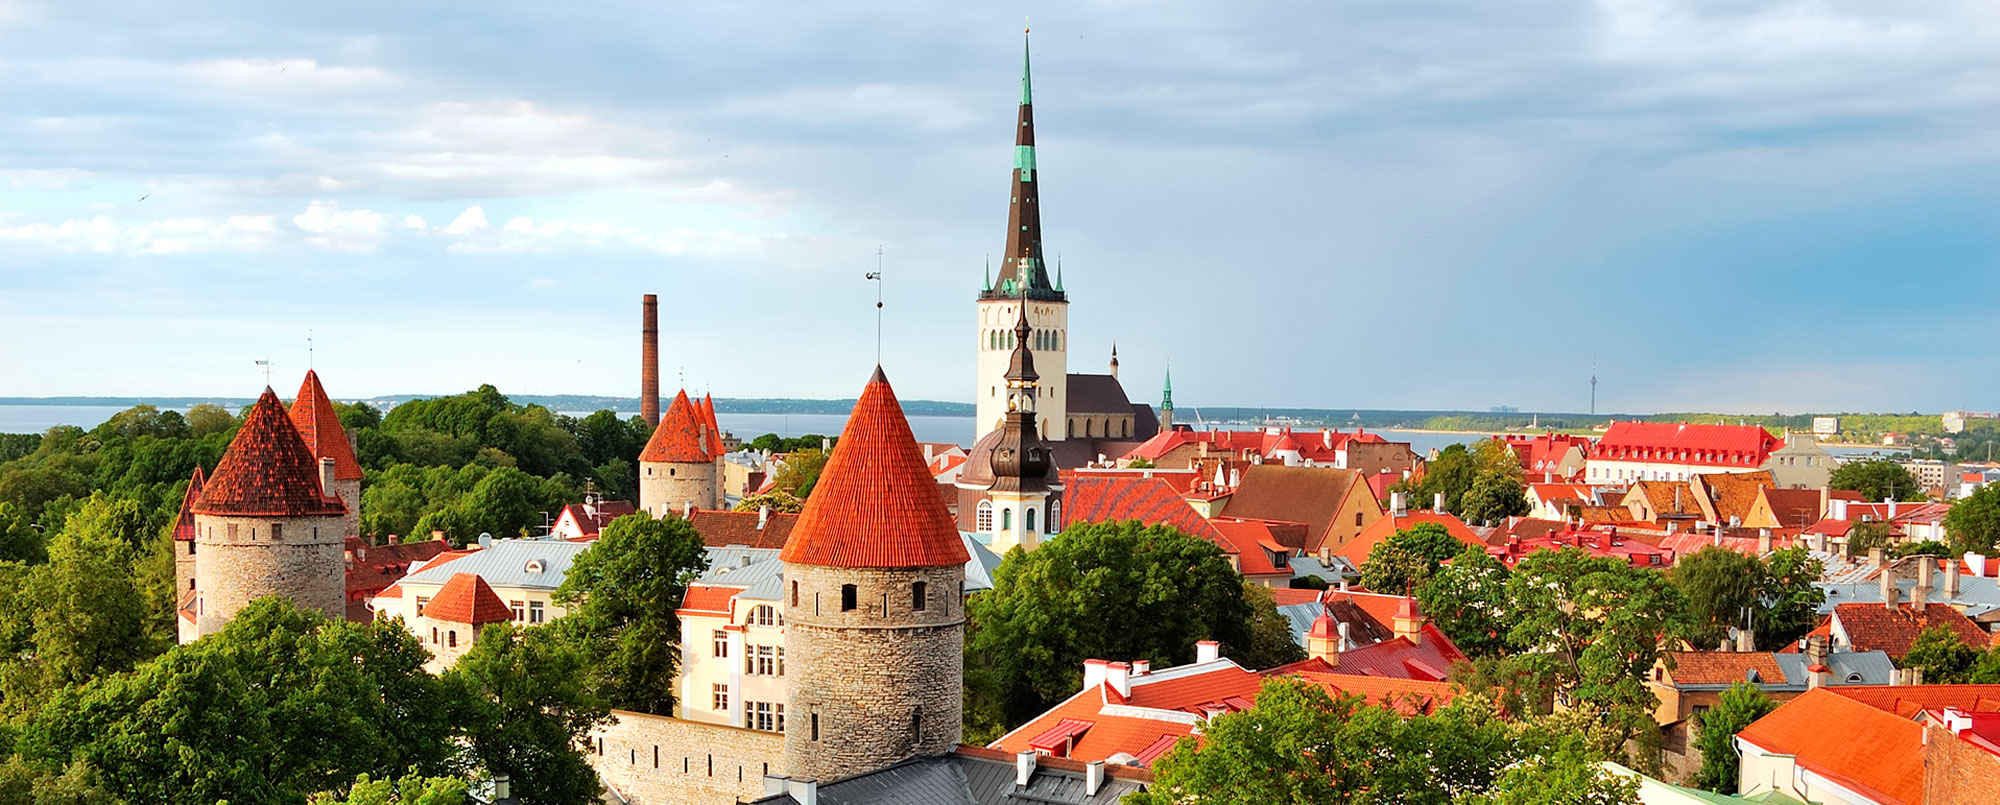 10.8.2019 Day cruise to Tallinn